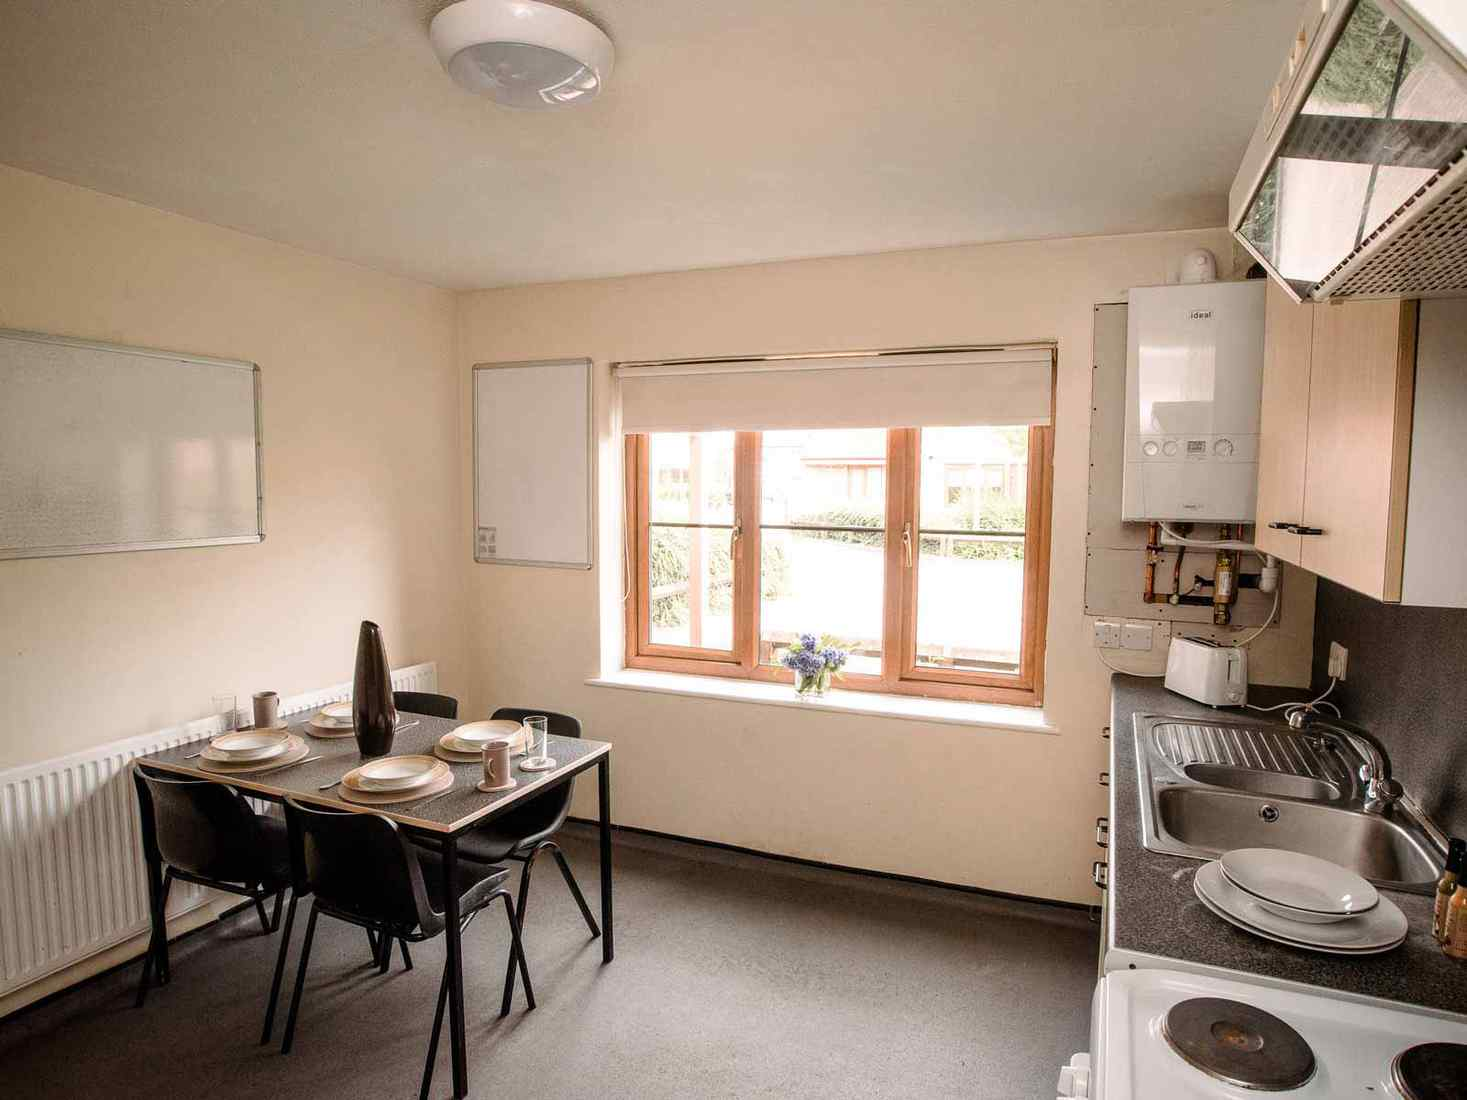 Communal kitchen in Limes Court with table for 4